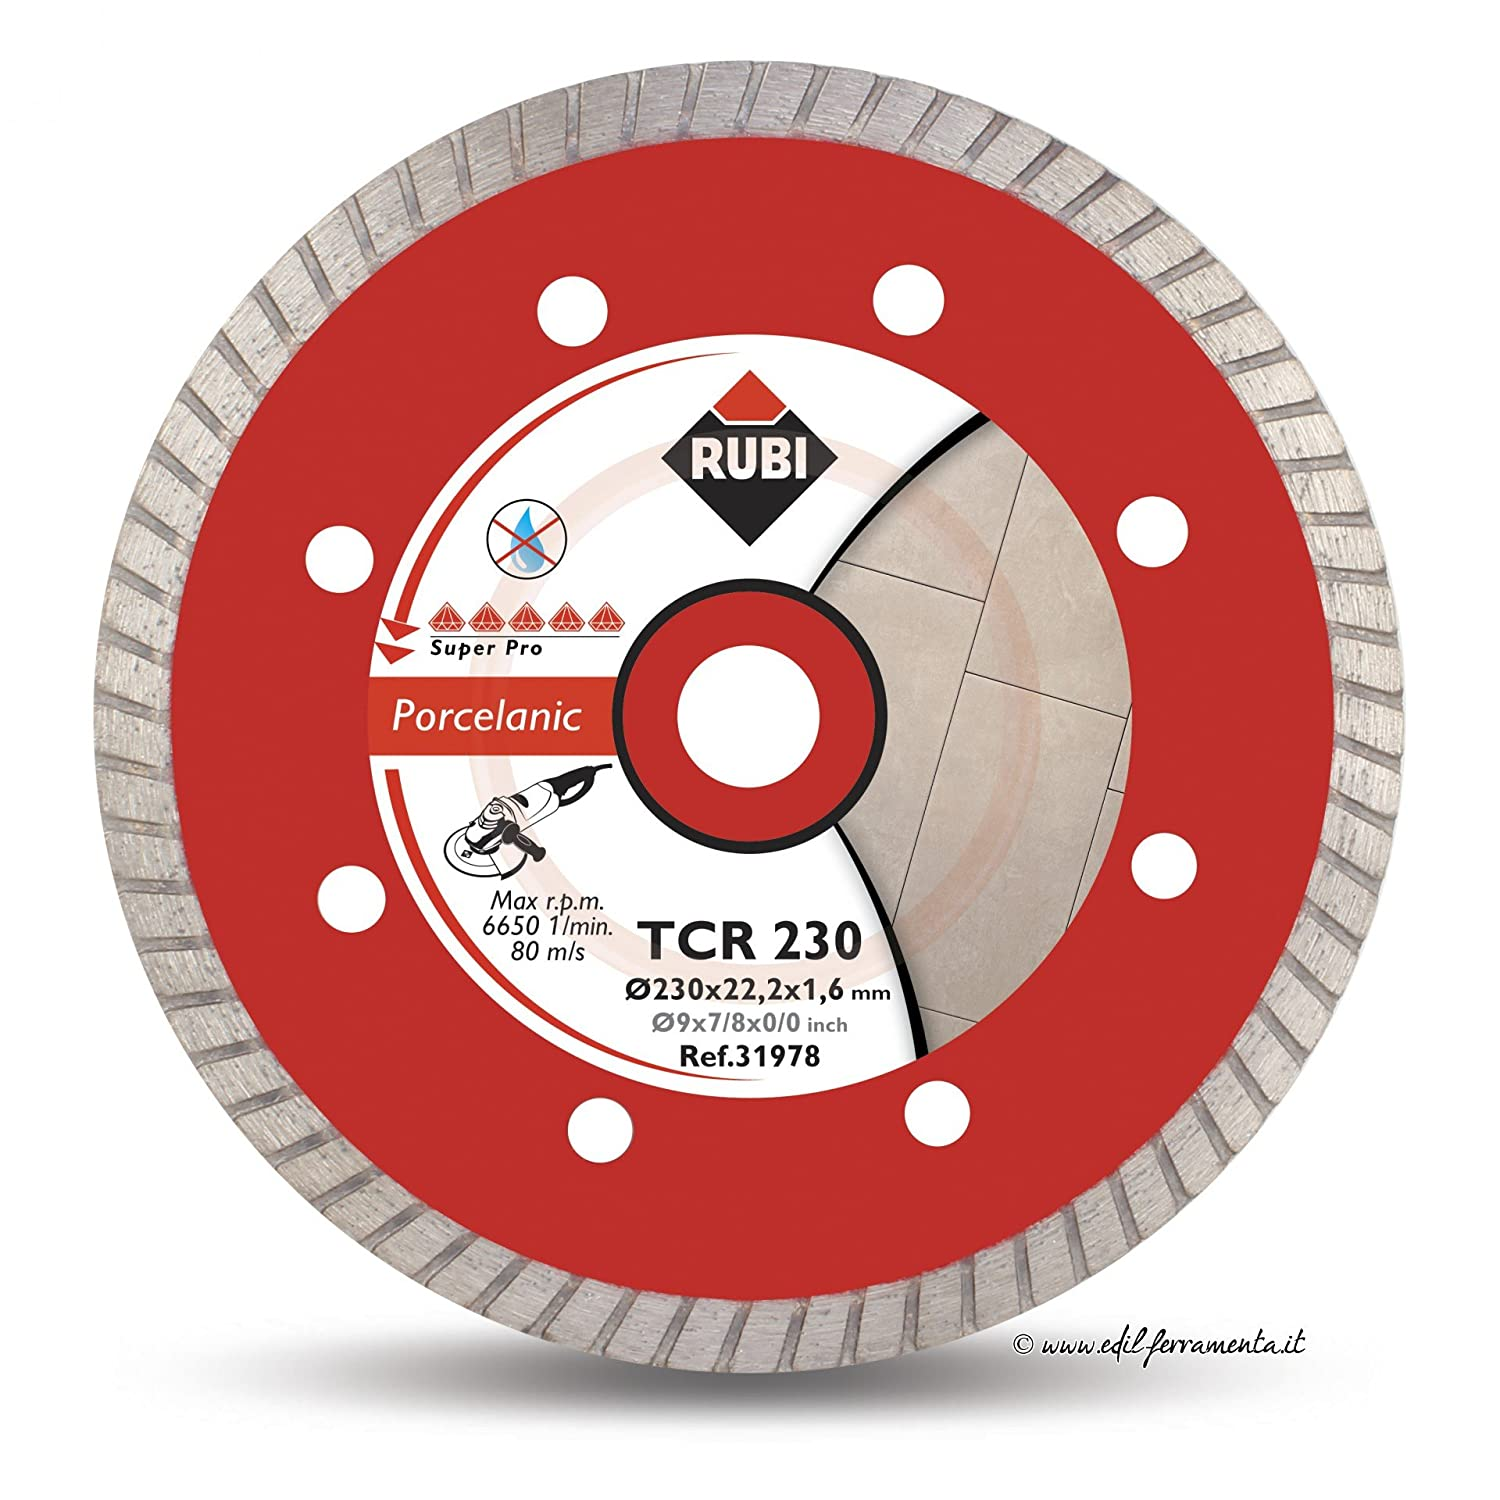 Rubi TCR Superpro Dry Cut Turbo Diamond Blade